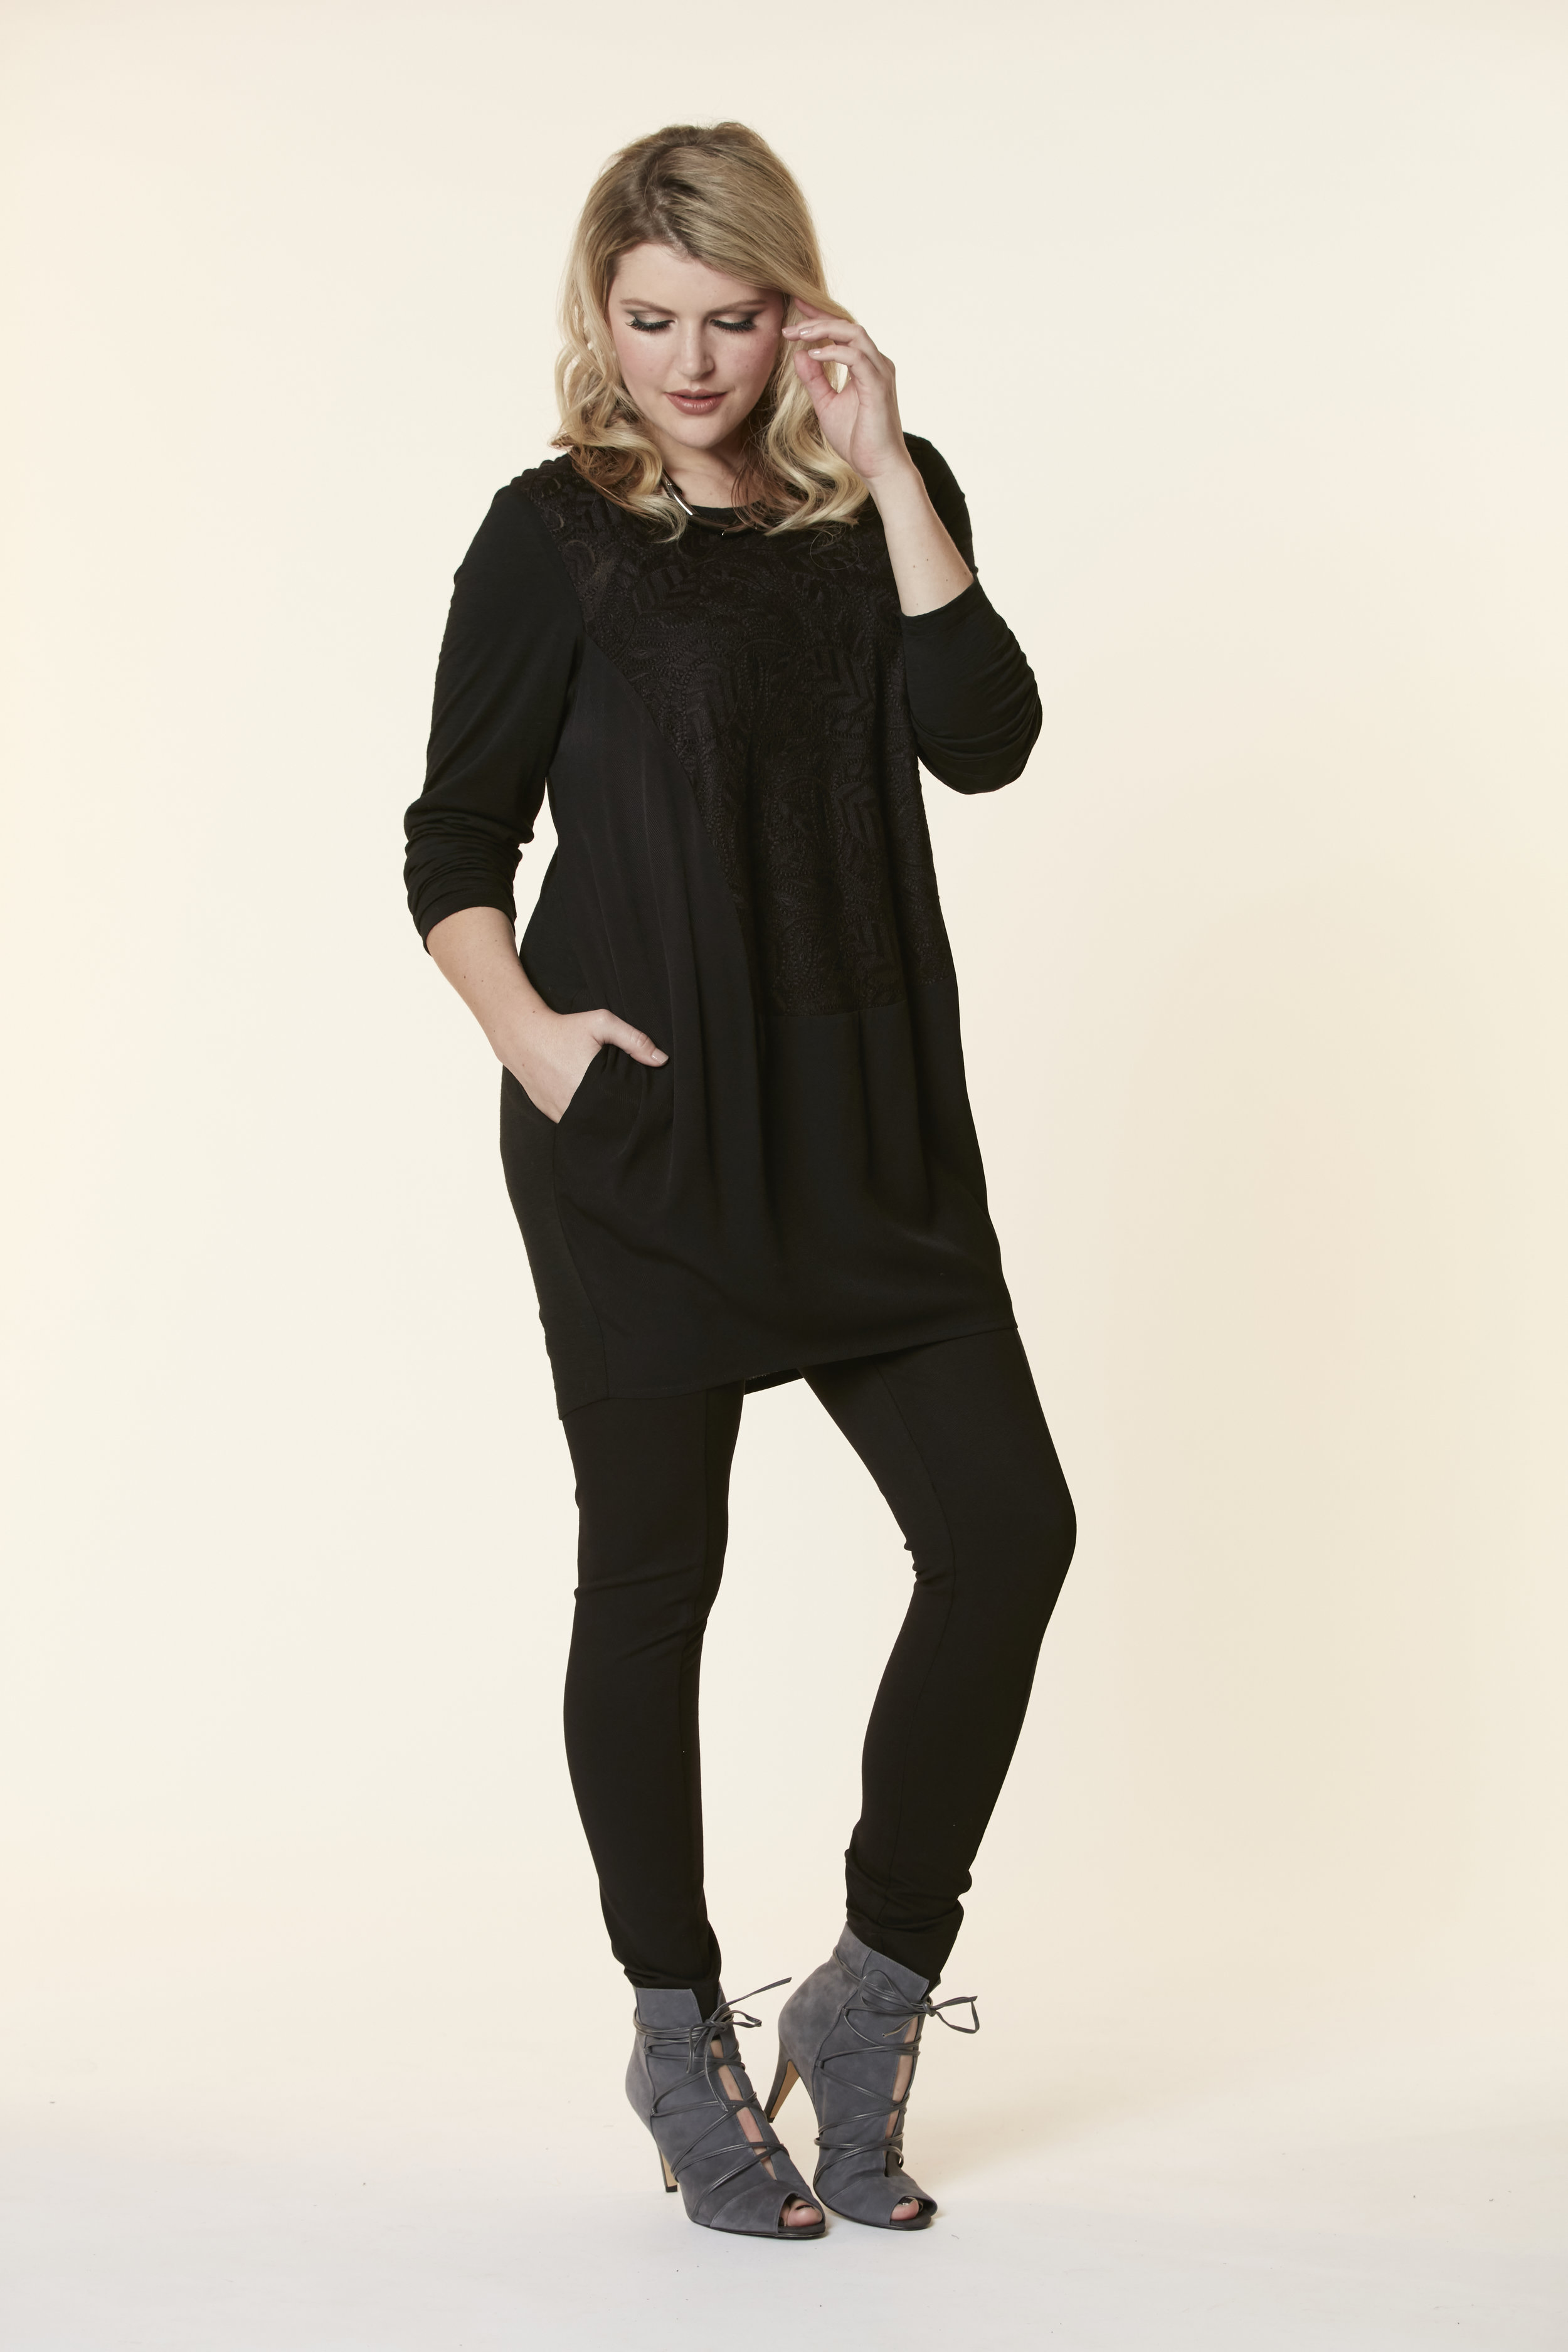 72895 Lancaster Tunic Dress, 72934 Skinny Panel Pant FRONT.jpg